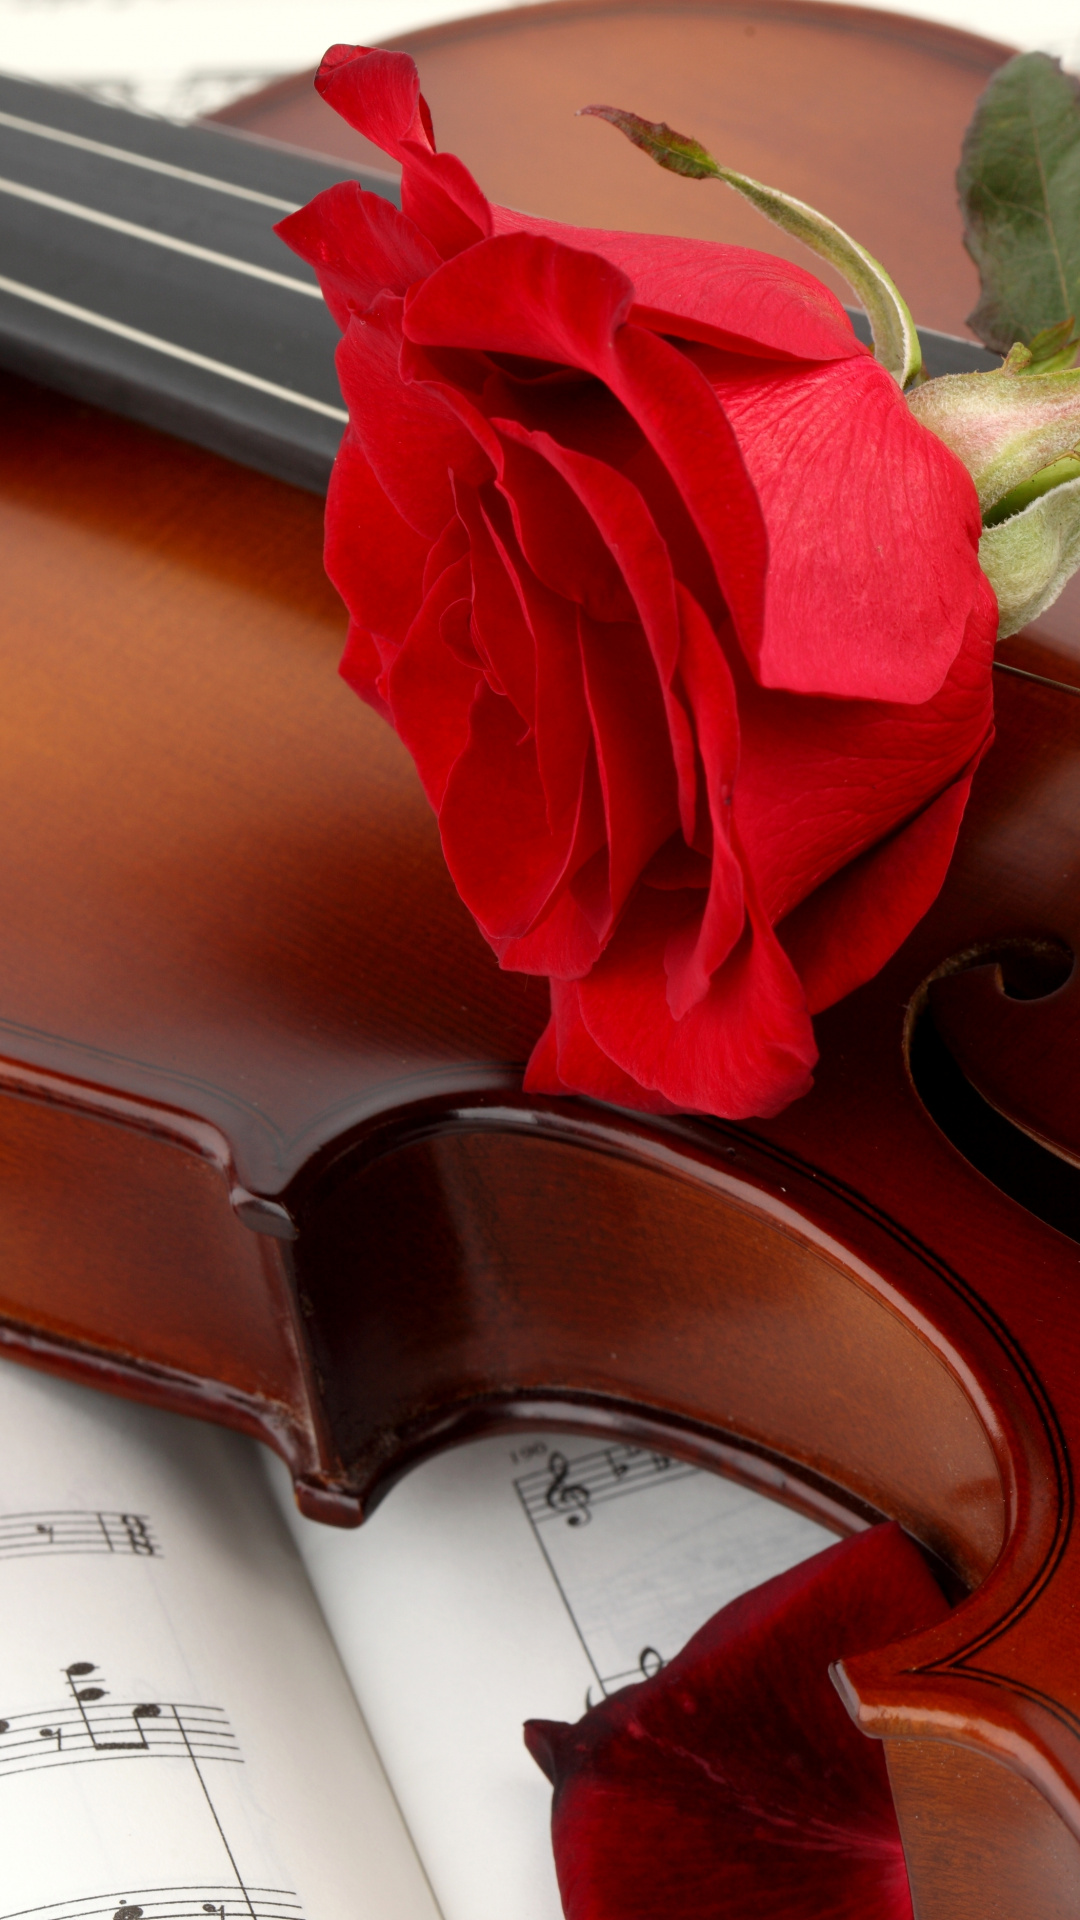 Bowed String Instrument Red Black Rose Violin Rose Violin Images With Flowers 1854850 Hd Wallpaper Backgrounds Download